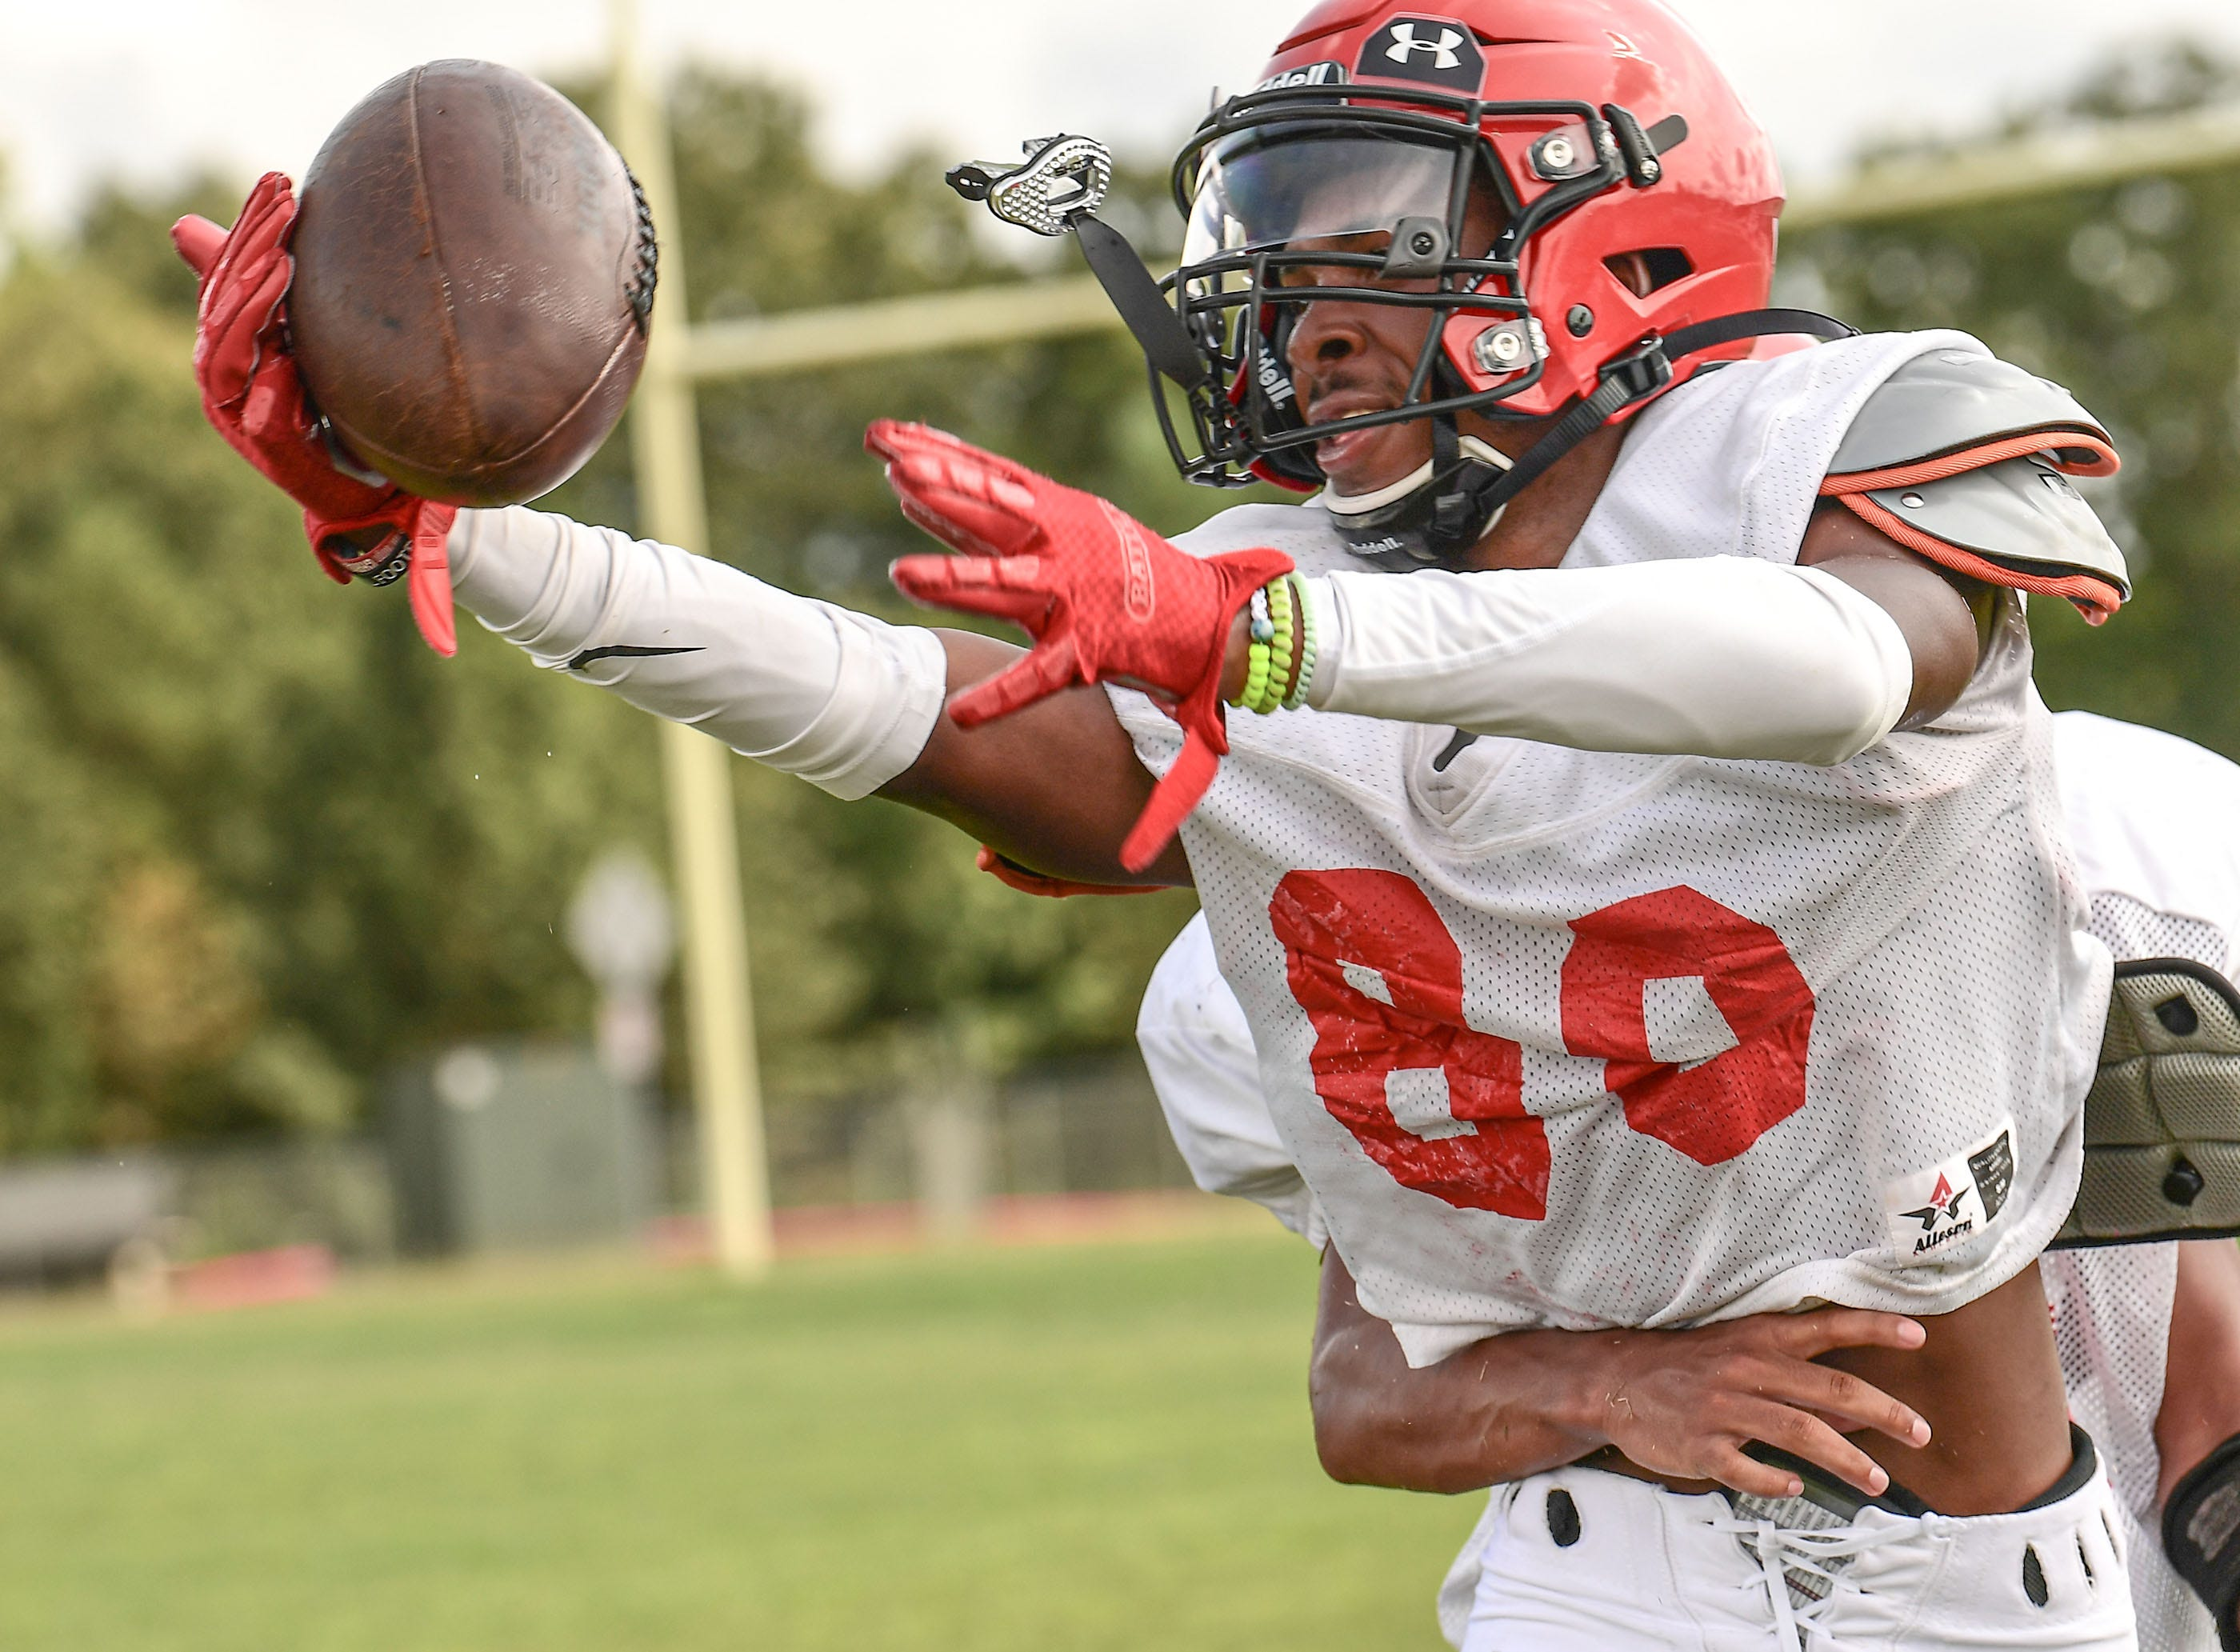 Liberty football wide receiver Shaimaine Jamison catches a ball during practice in Liberty, S.C. September 2020.